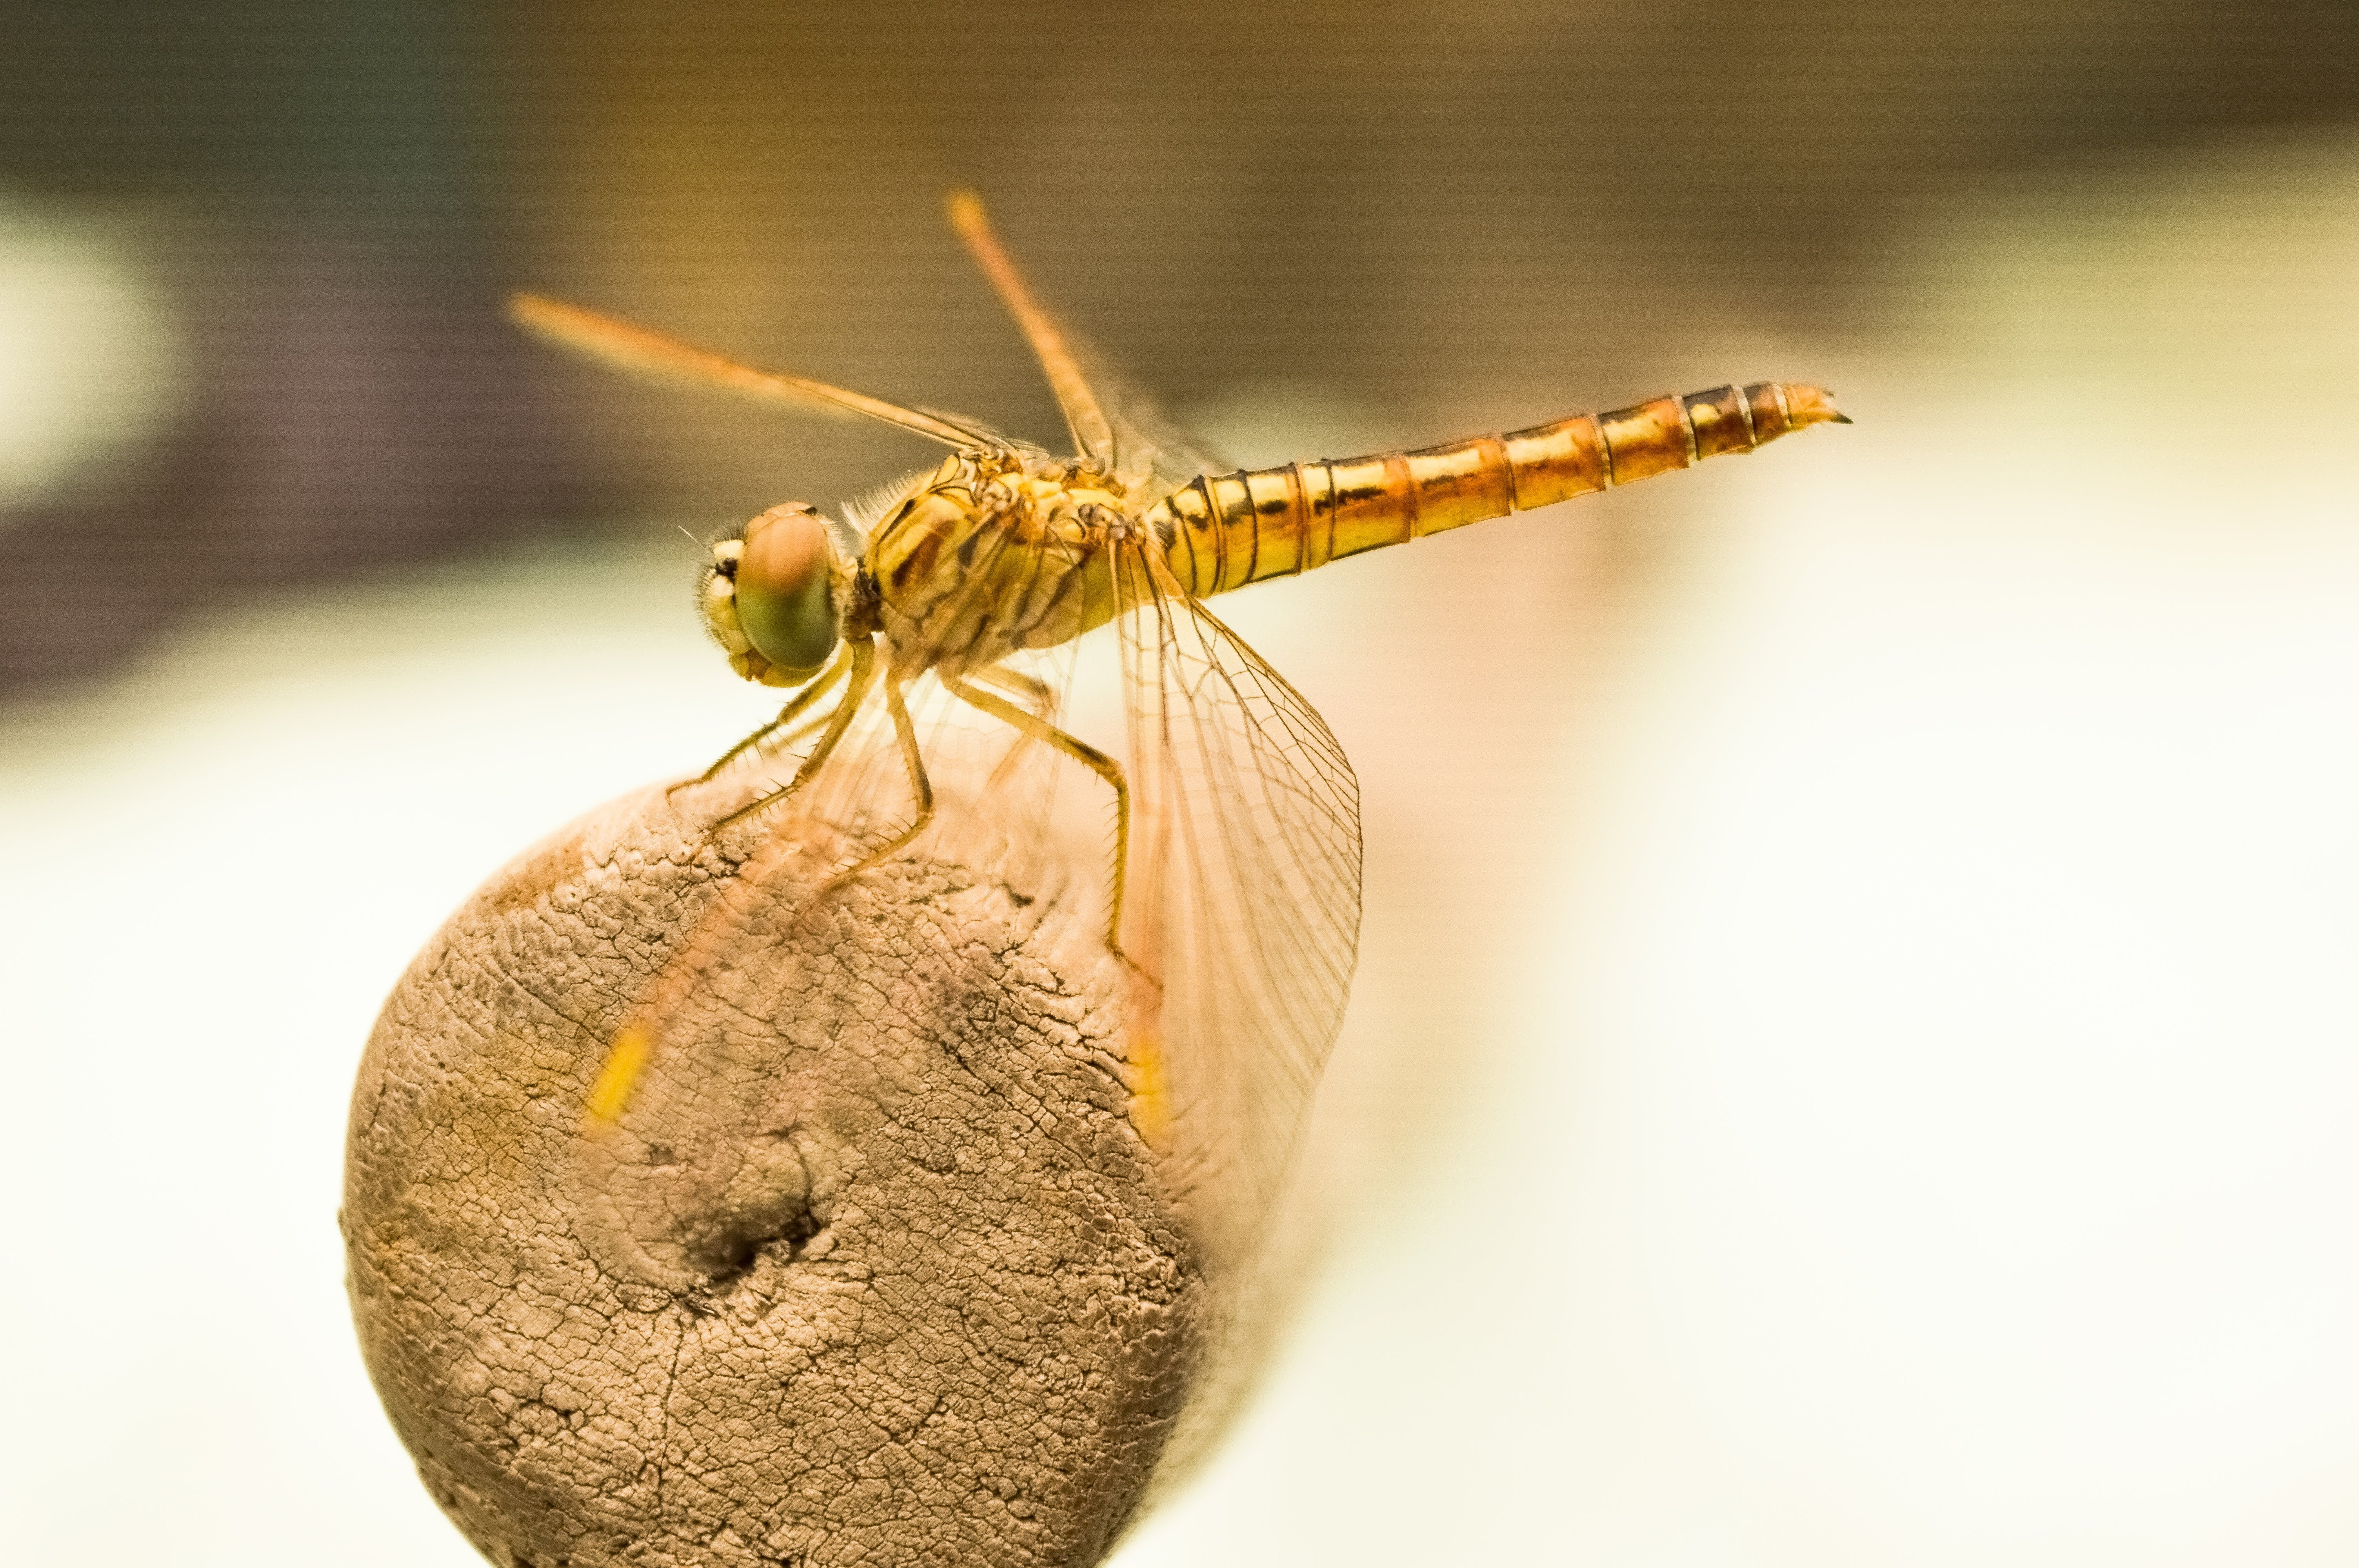 Yellow Dragonfly on Brown Wooden Stick during Daytime